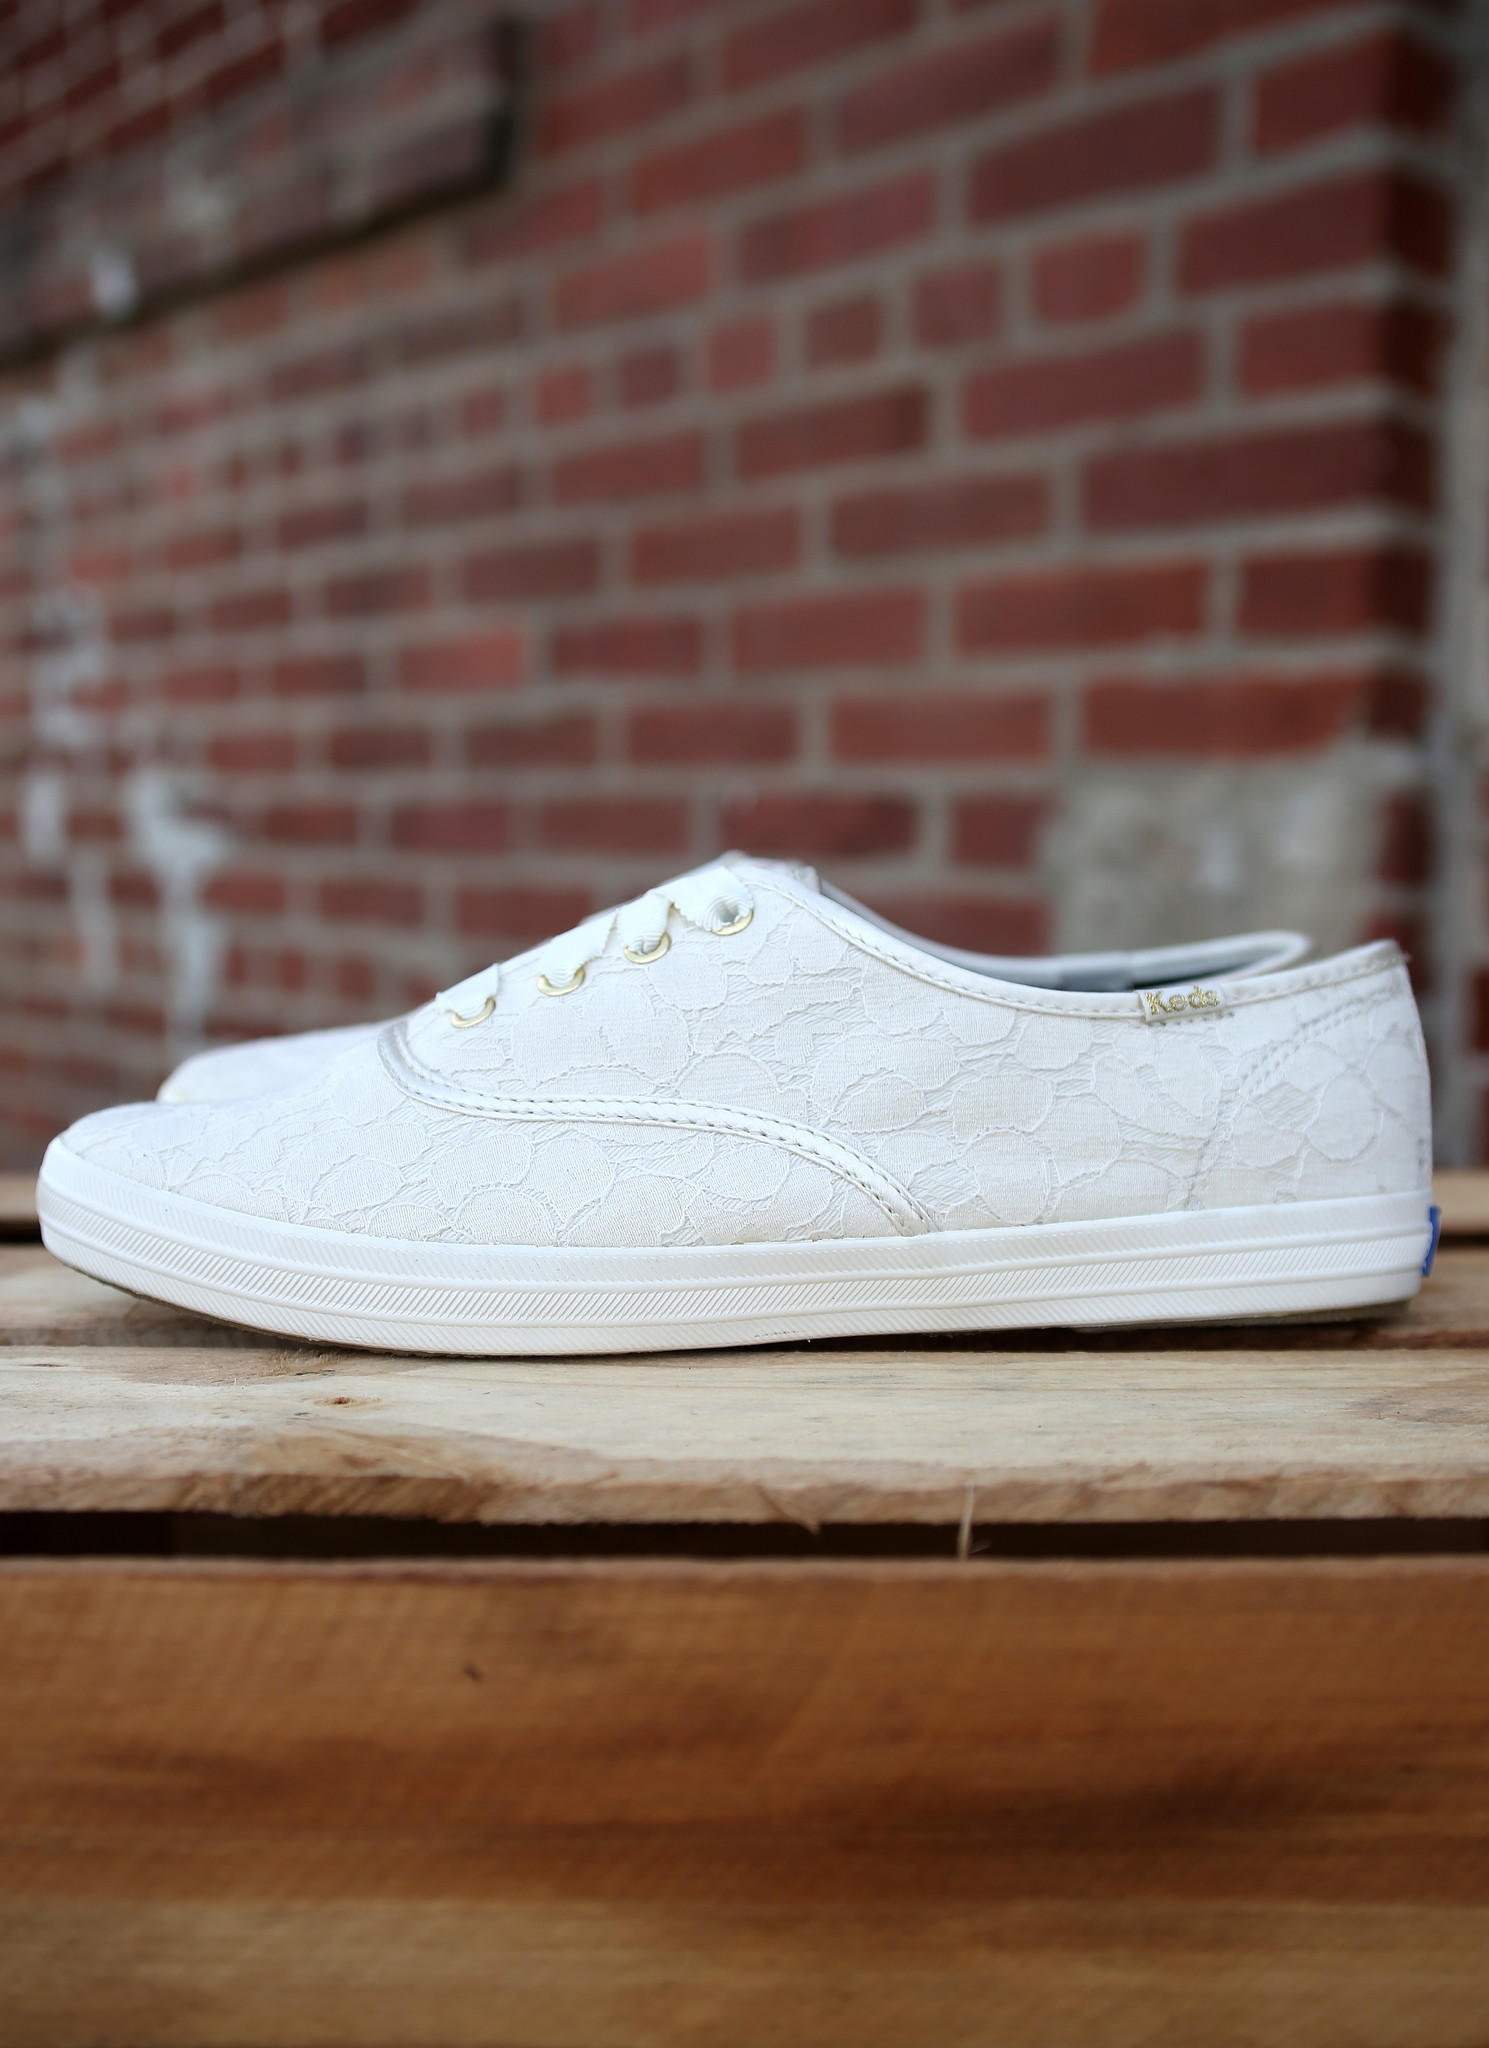 79a64511bea Keds Champion Lace Sneakers  Cream  from Shoe Craze